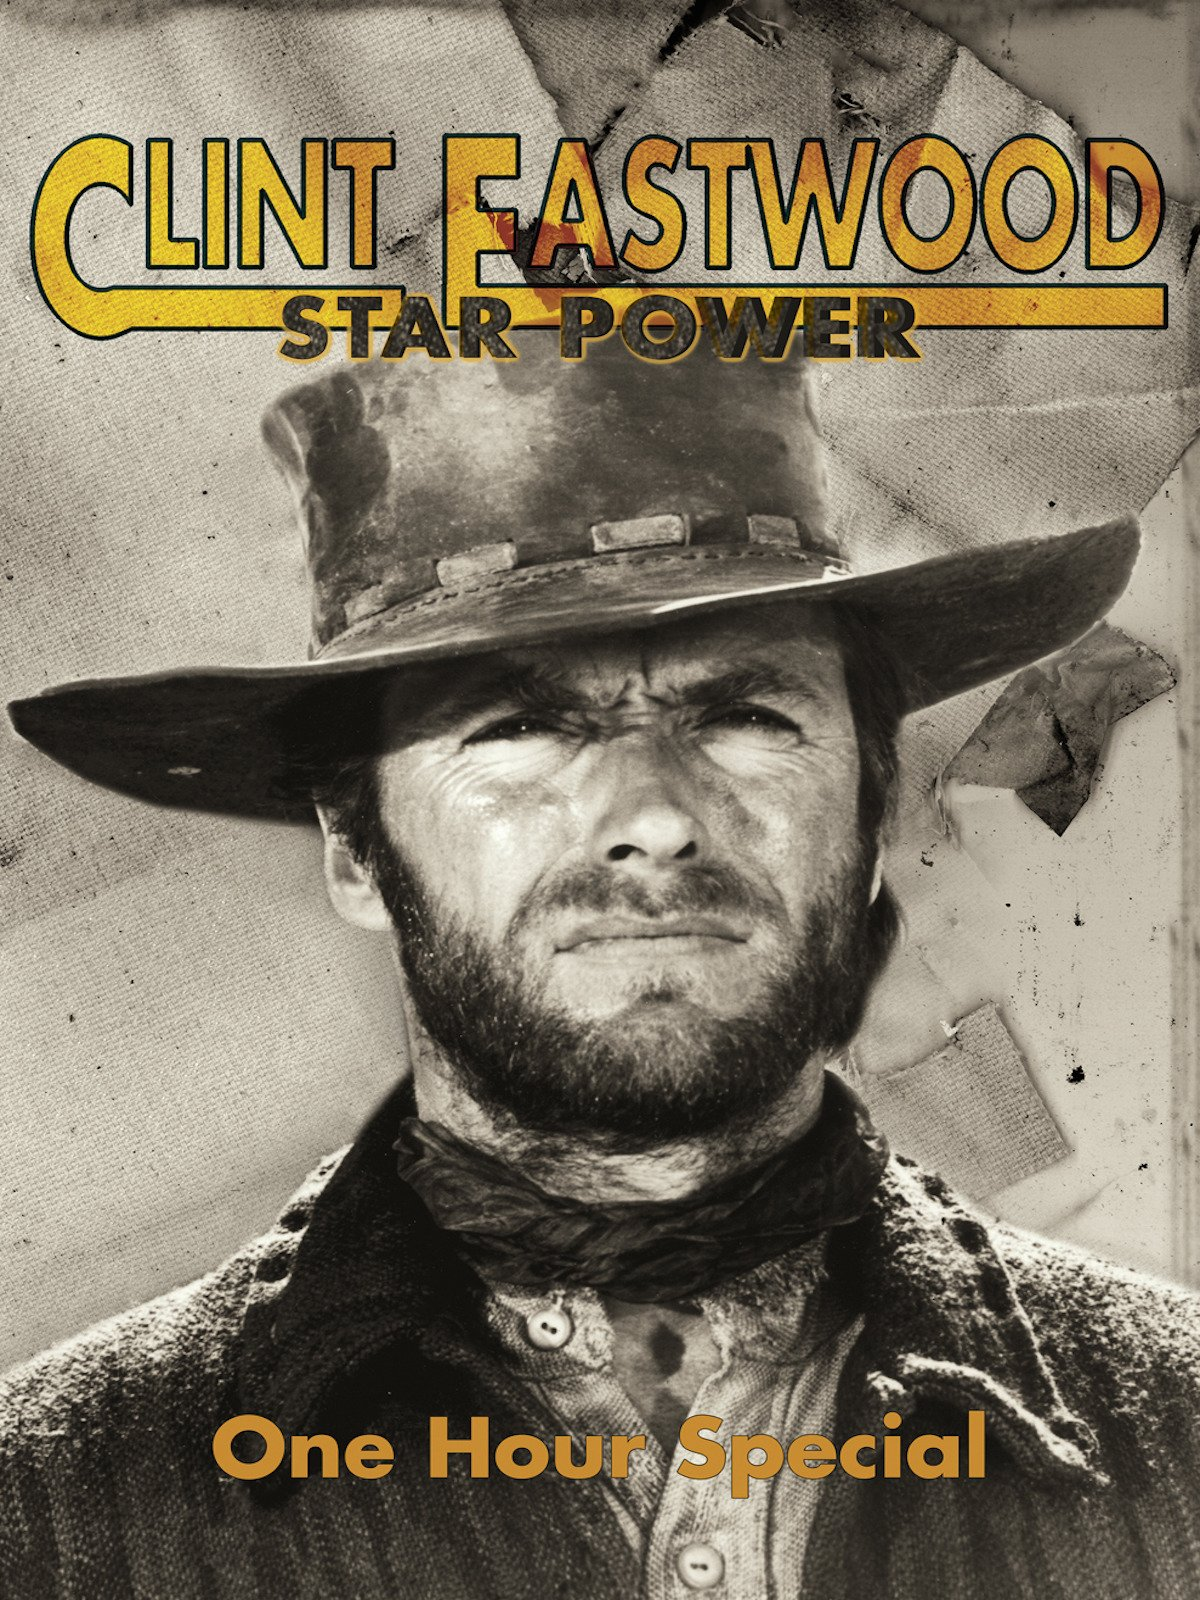 Clint Eastwood: Star Power on Amazon Prime Video UK